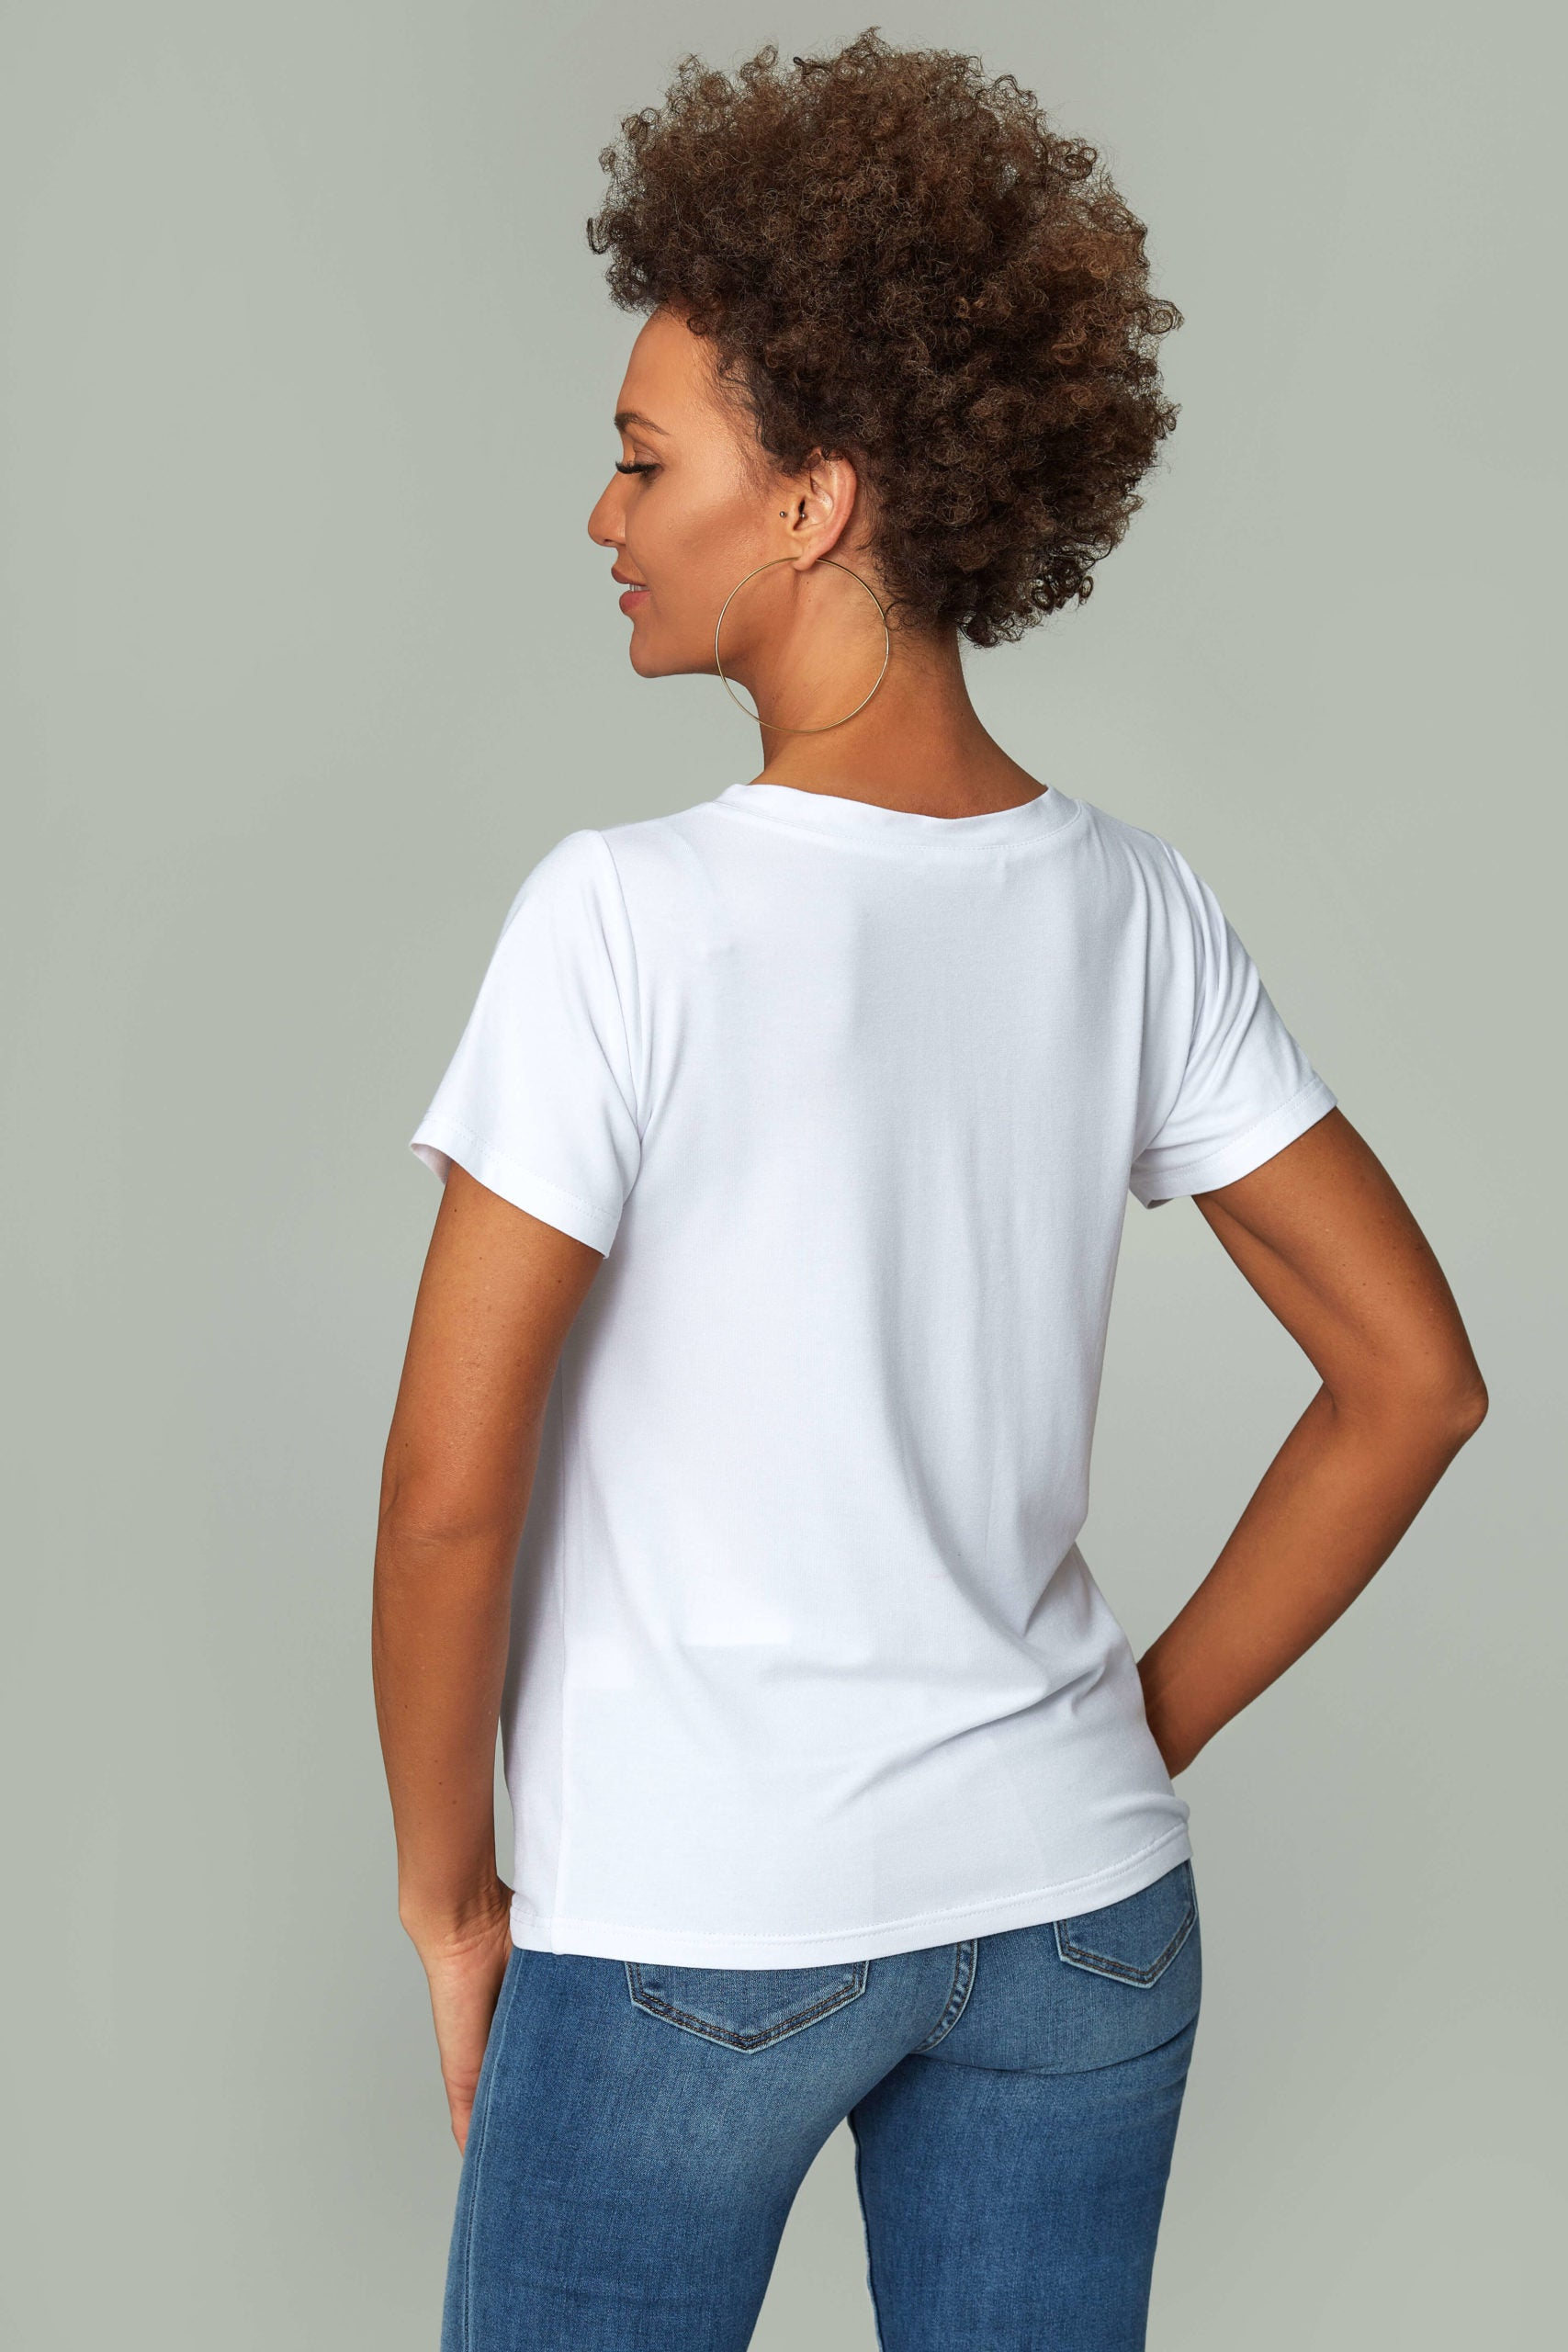 Womens's White V-neck T-shirt